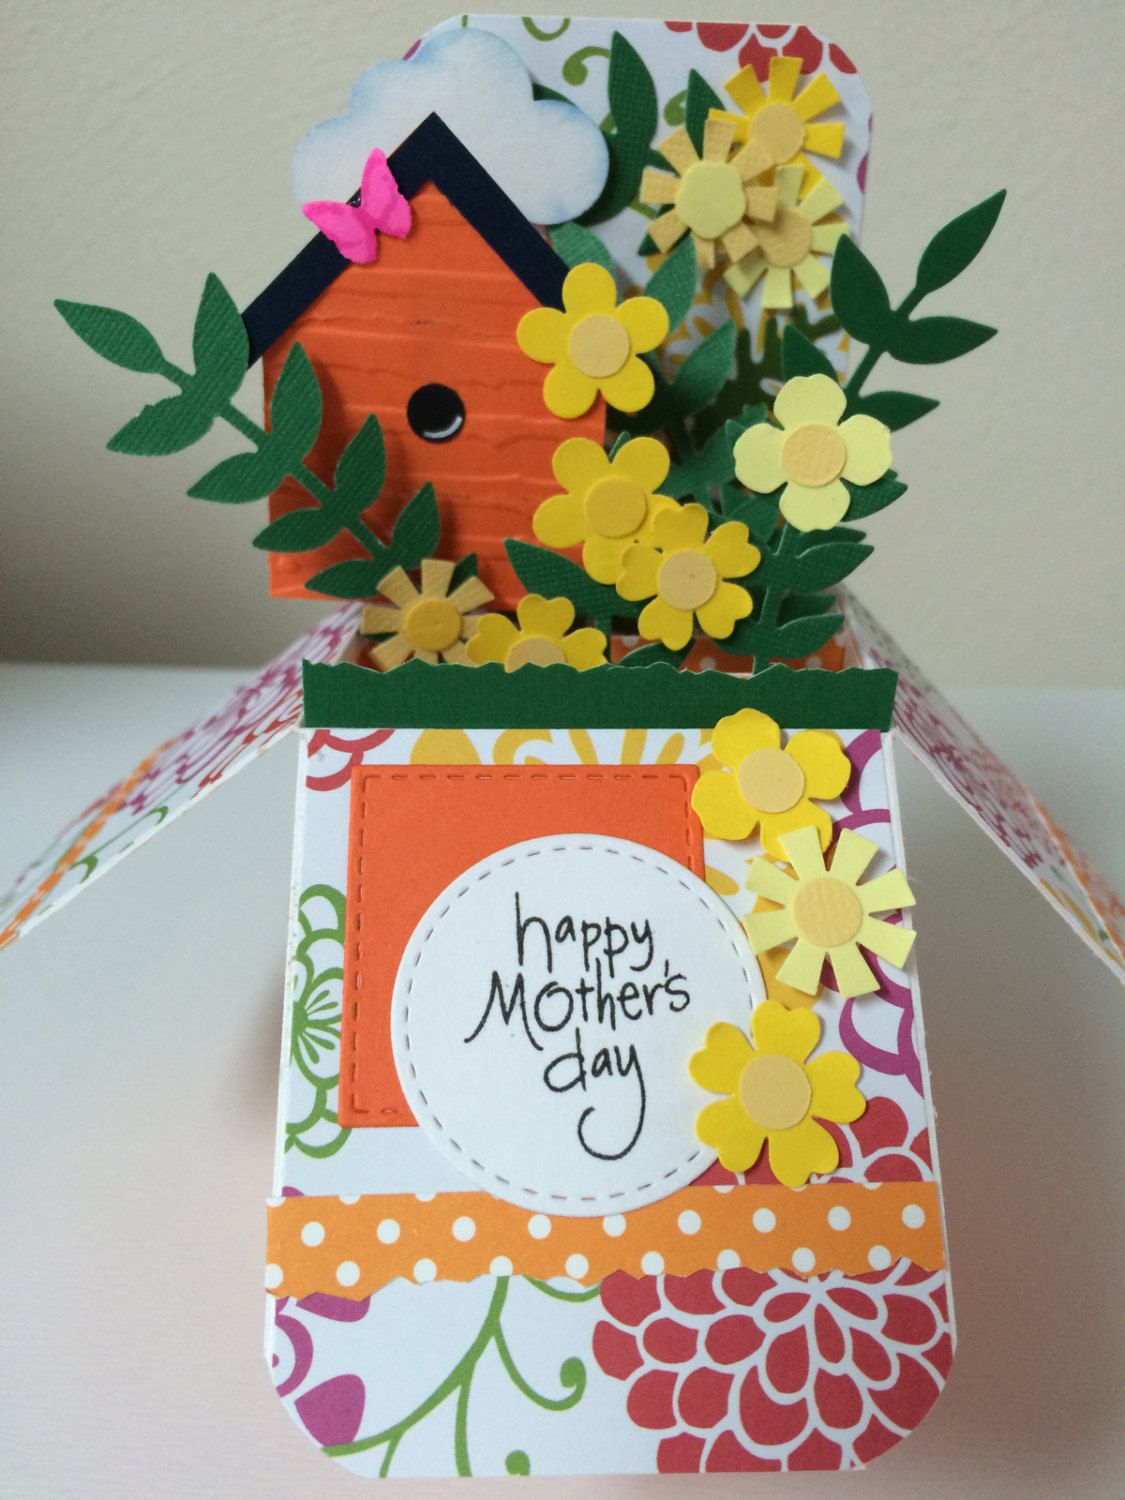 mother's day flowers  birdhouse popup box card  etsy